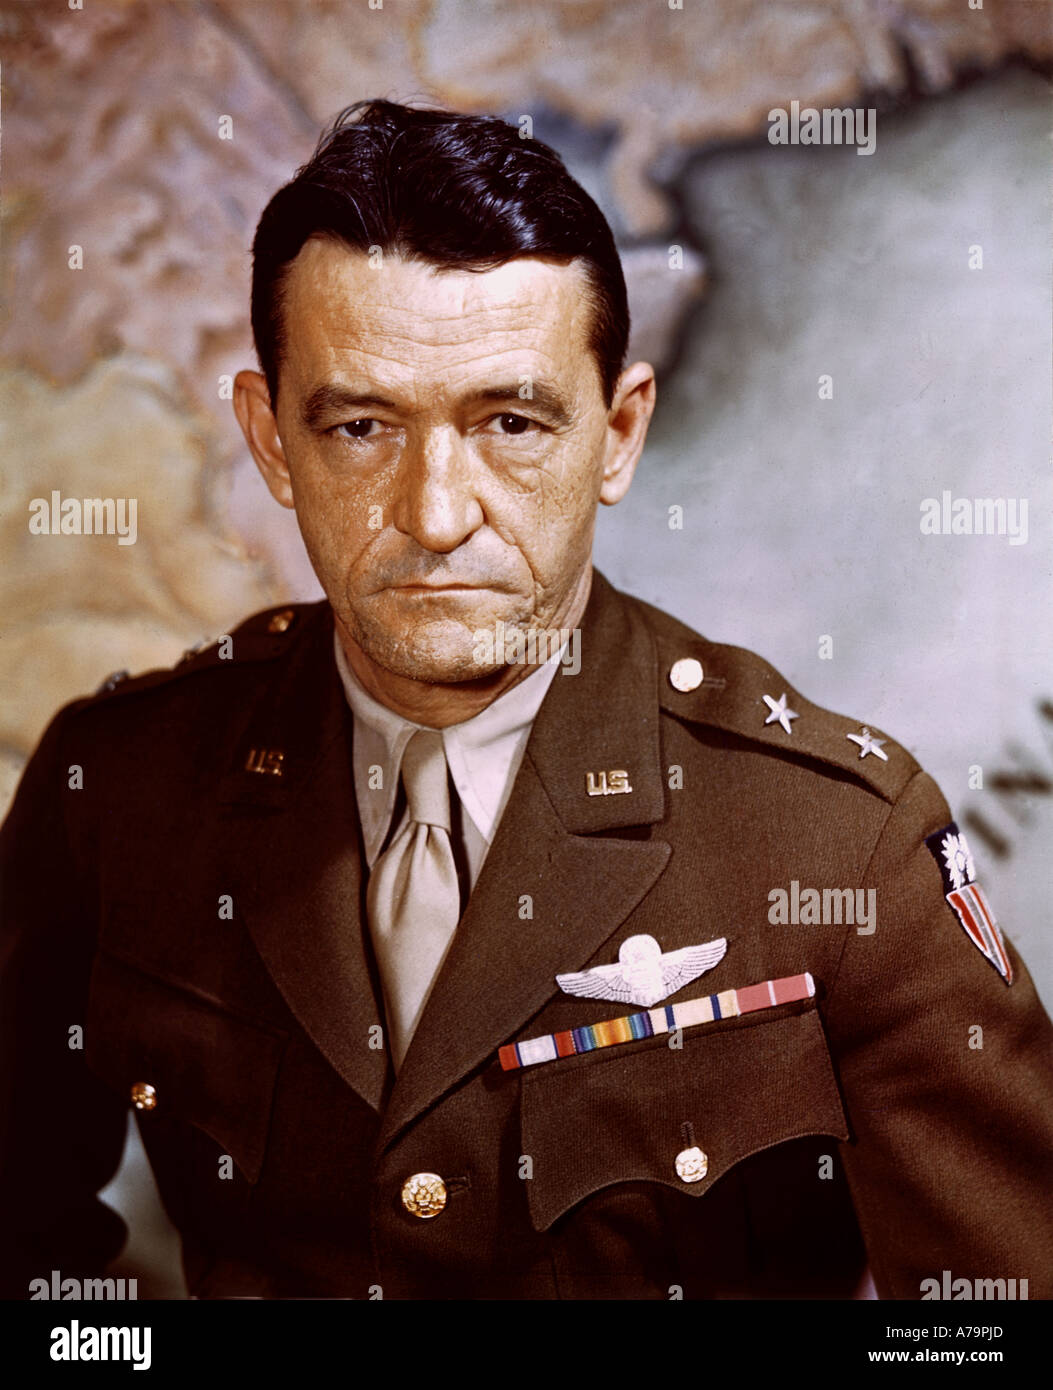 CLAIRE LEE CHENNAULT  1893 to 1958 US as Lieutenant General of US Army Airforce about 1943 - Stock Image